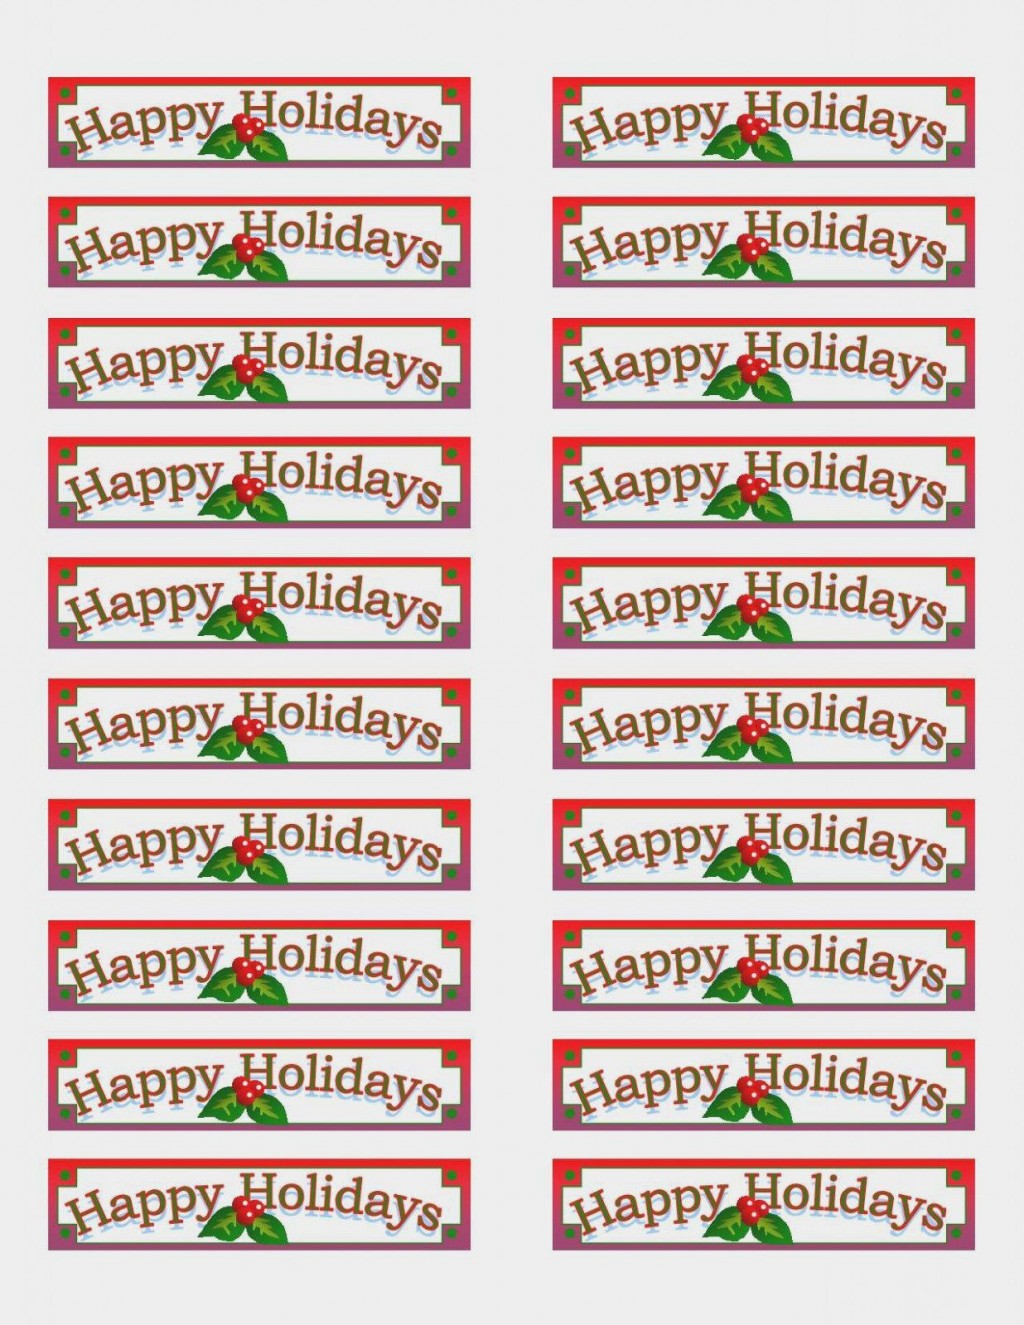 004 Archaicawful Christma Addres Label Template Example  Free Download Shipping CardLarge